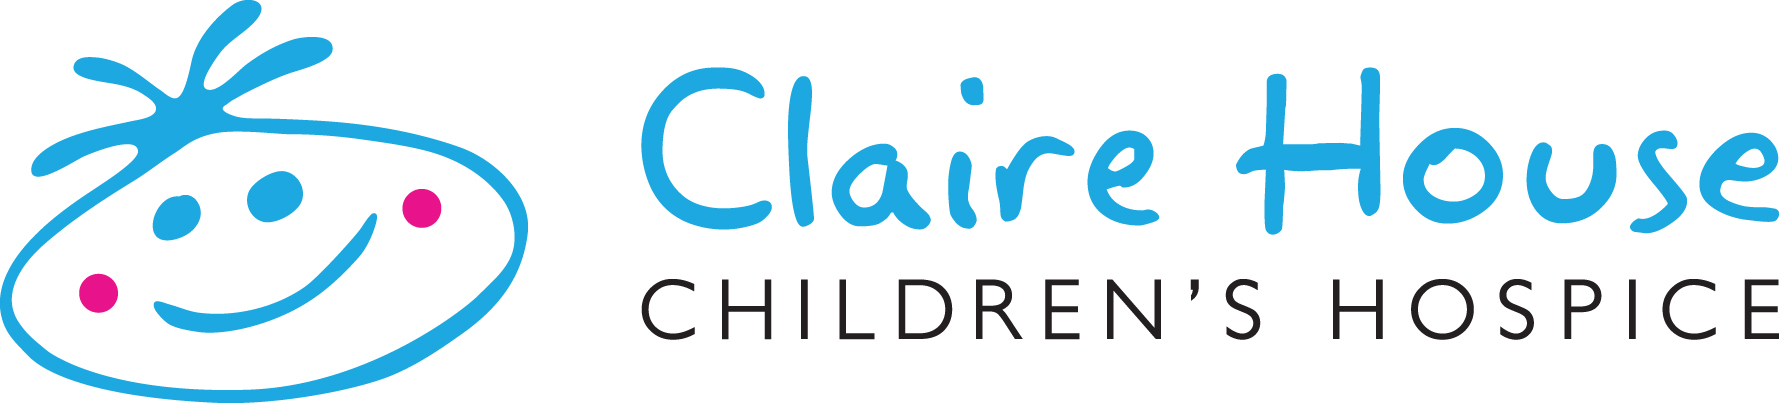 Careers | Roles and Careers at Claire House Children's Hospice